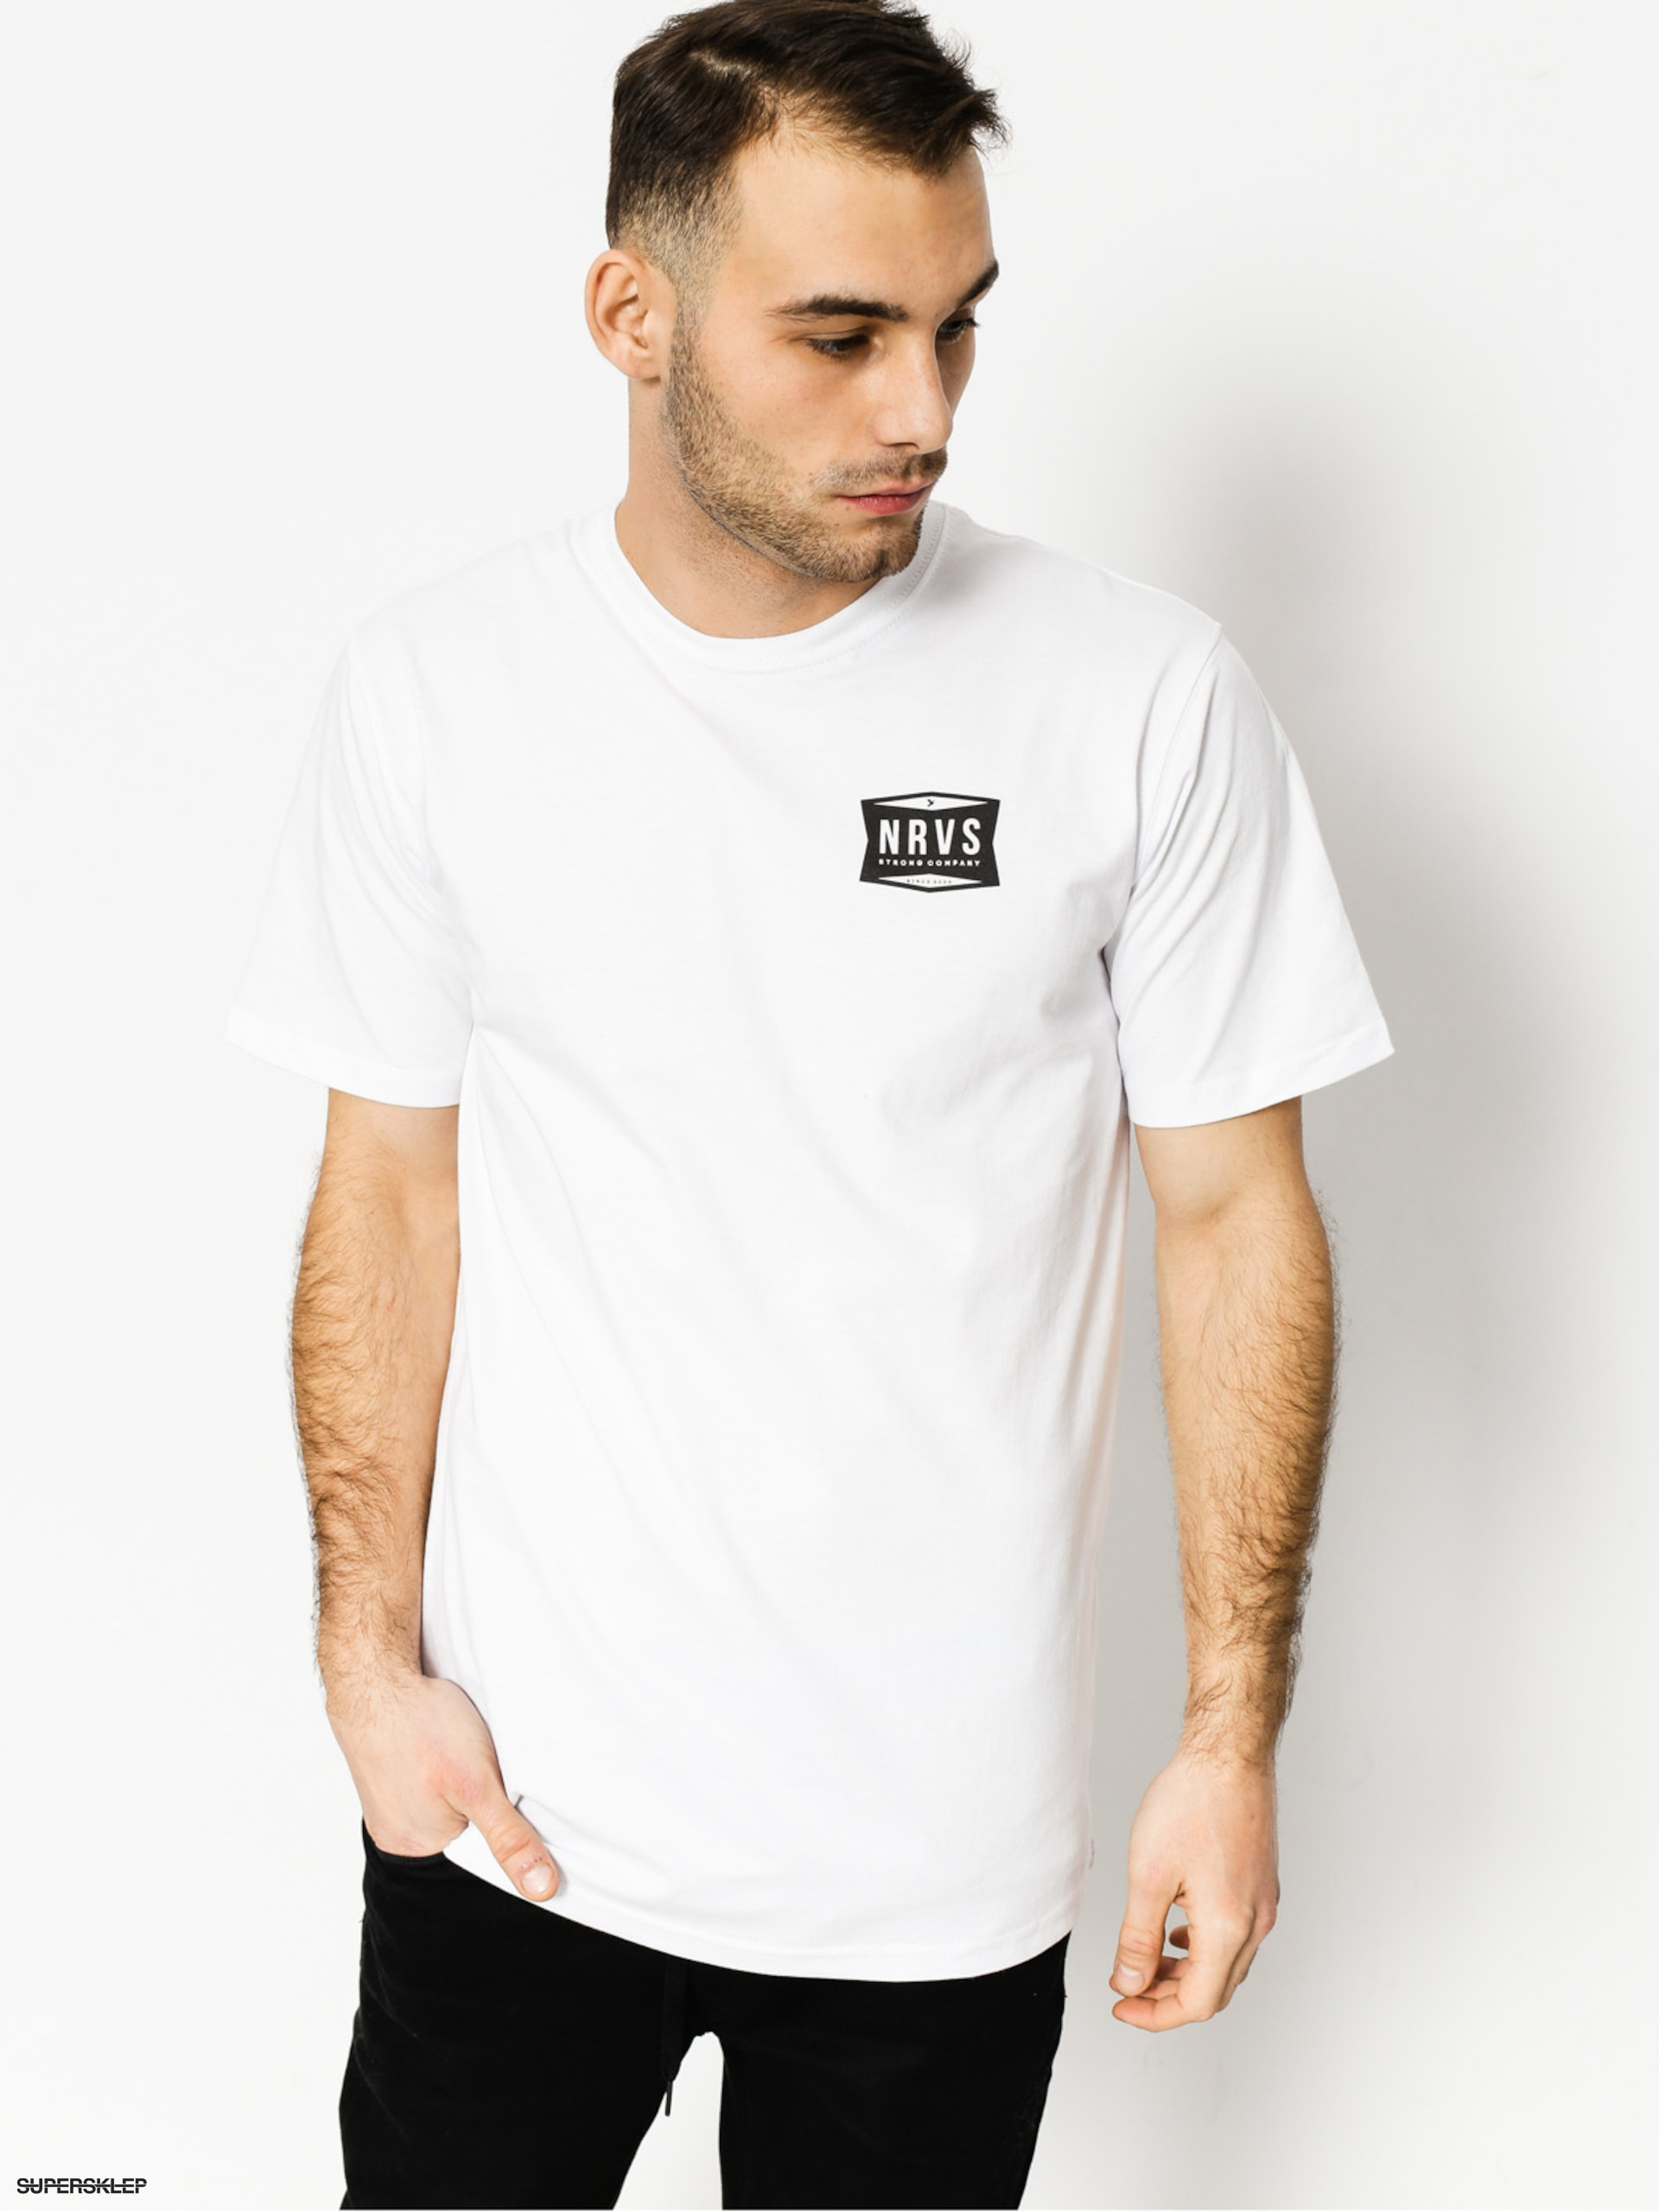 Tričko Nervous Shop (white)